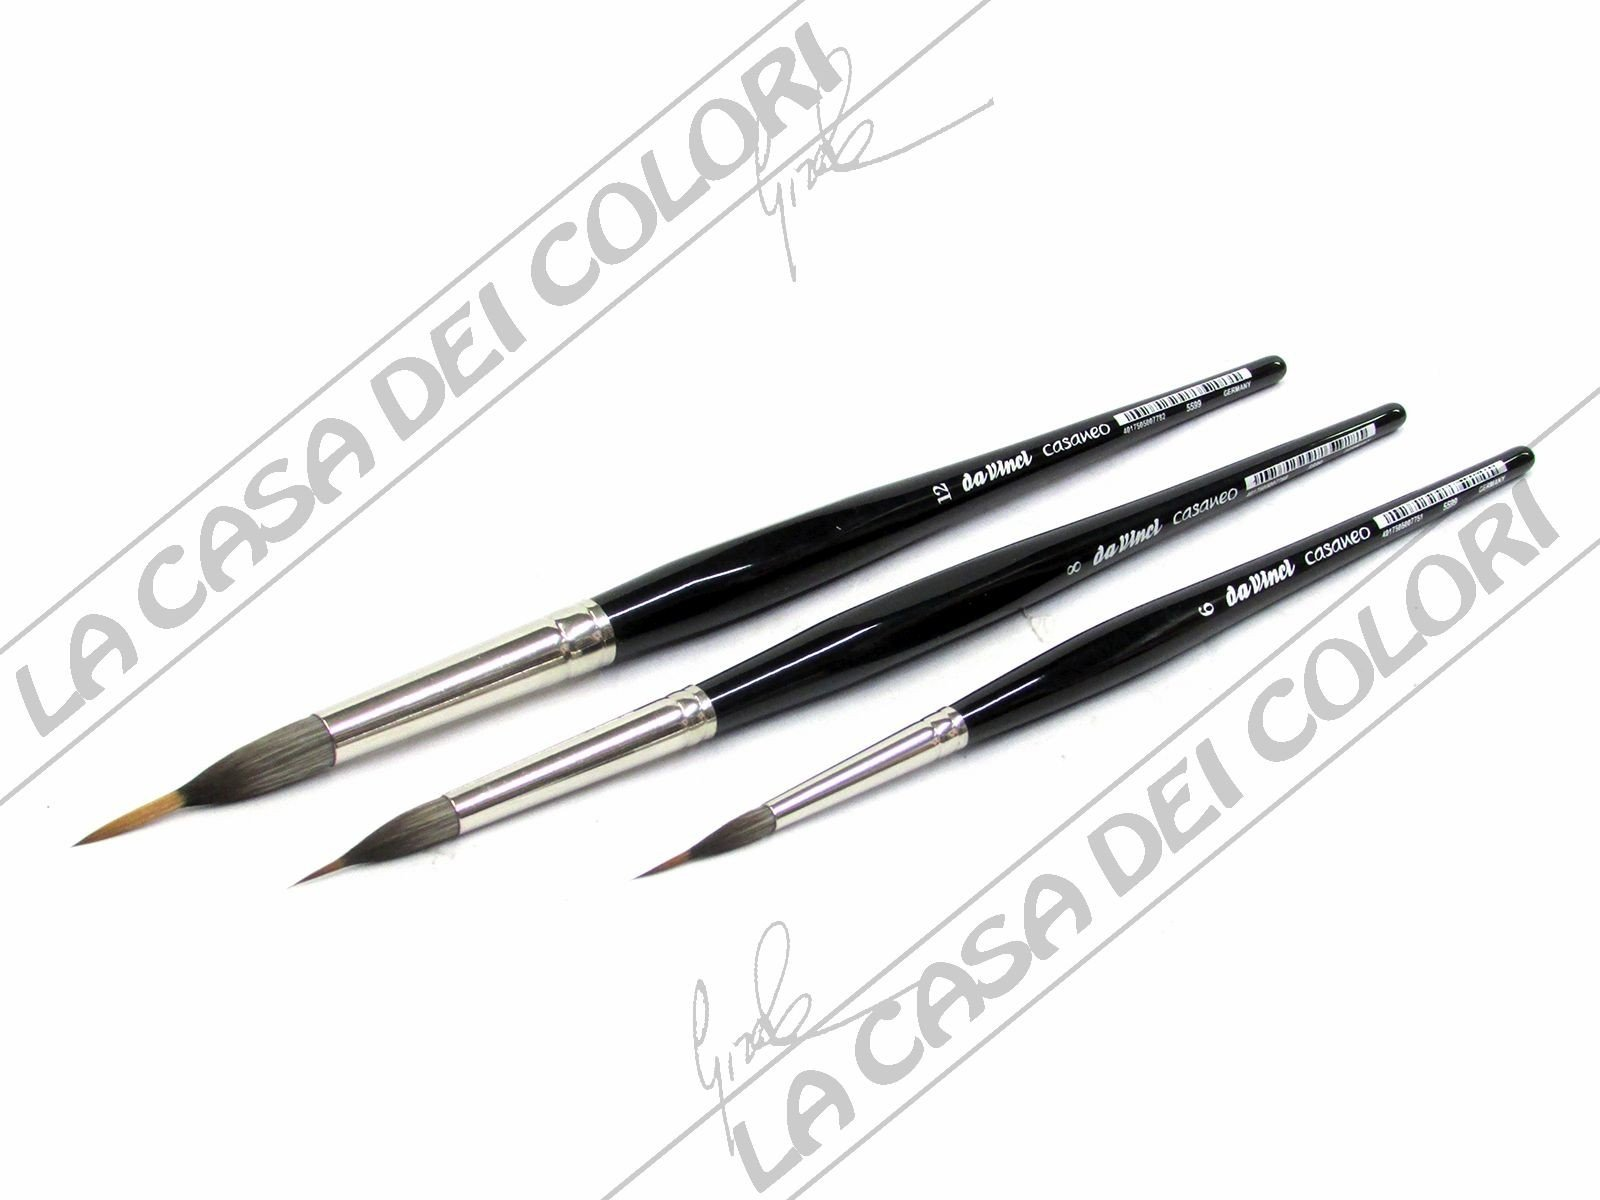 da Vinci Watercolor 5599-8 Casaneo Watercolor Brush Black